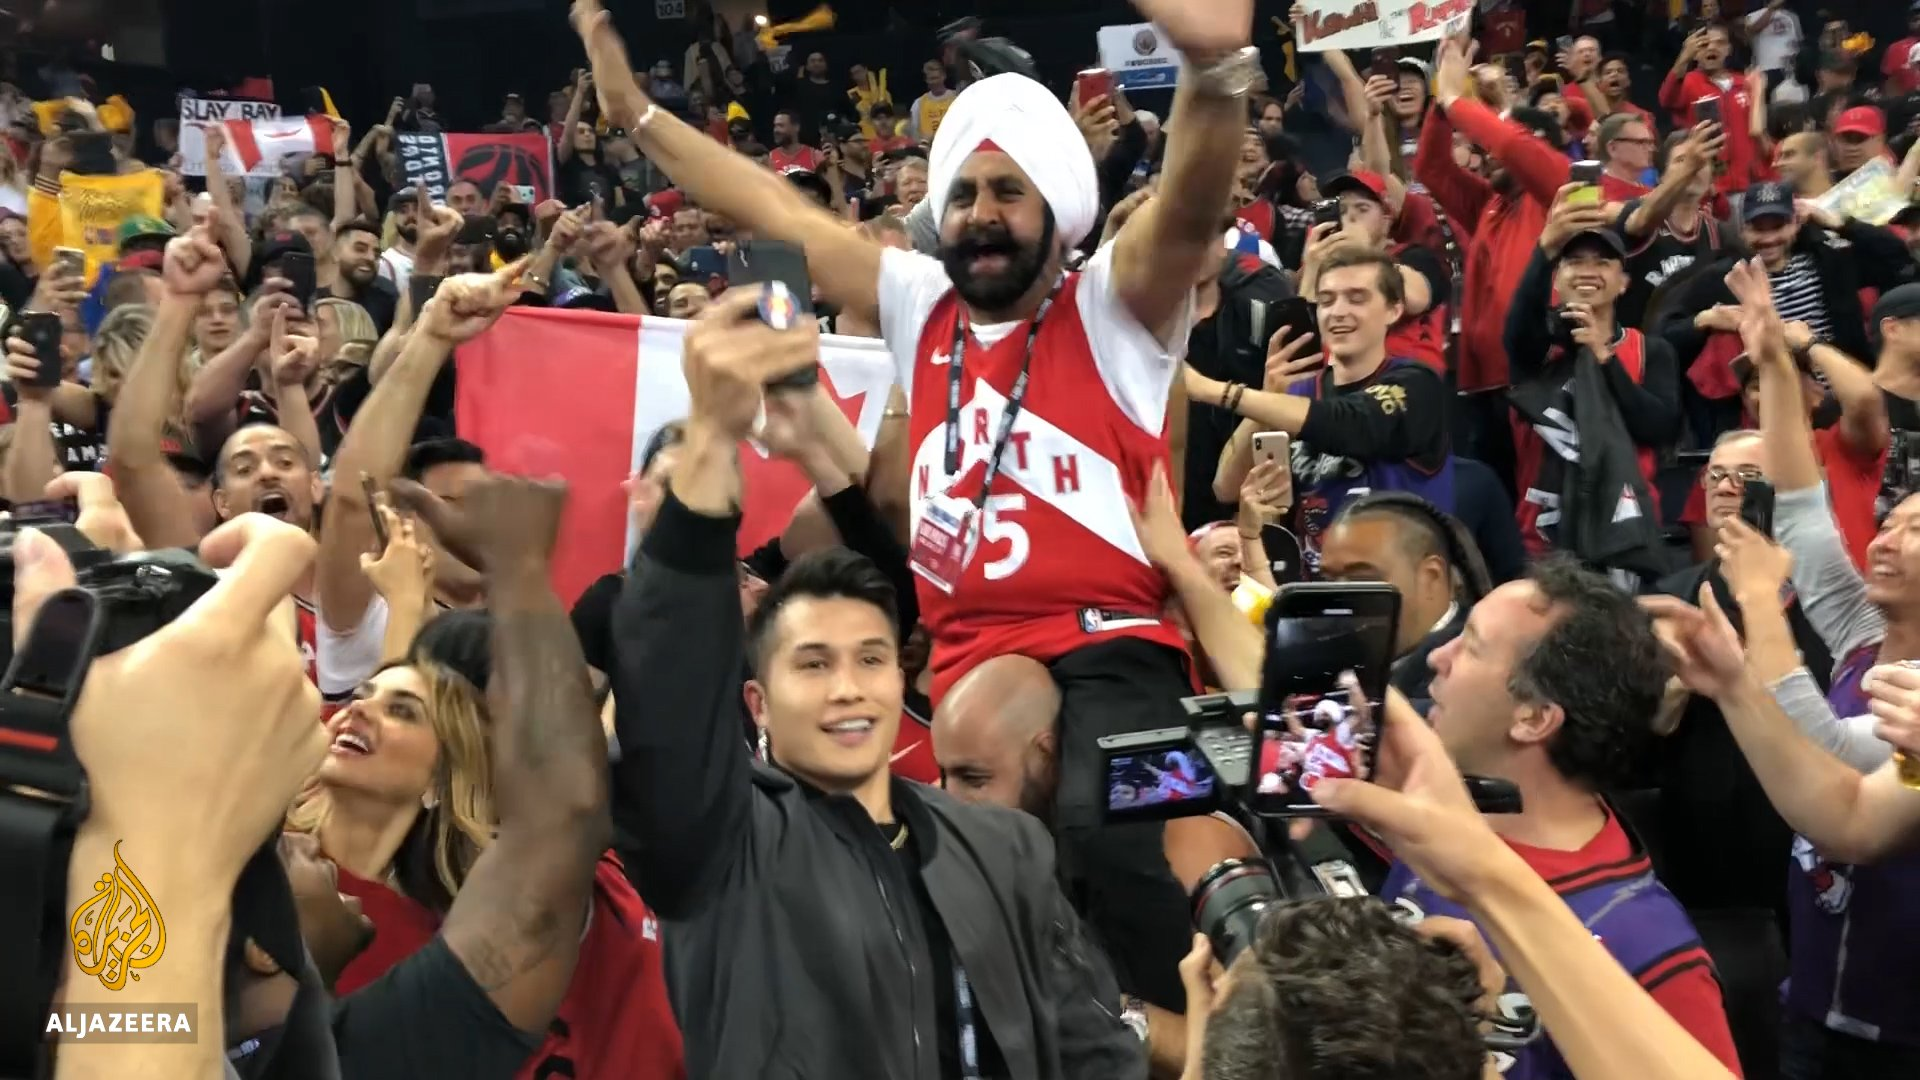 We met @Raptors Superfan @superfan_nav last year after his team became NBA champs.   He's now one of the first fans to be honoured by basketball's Hall of Fame. https://t.co/oX00Zual1E